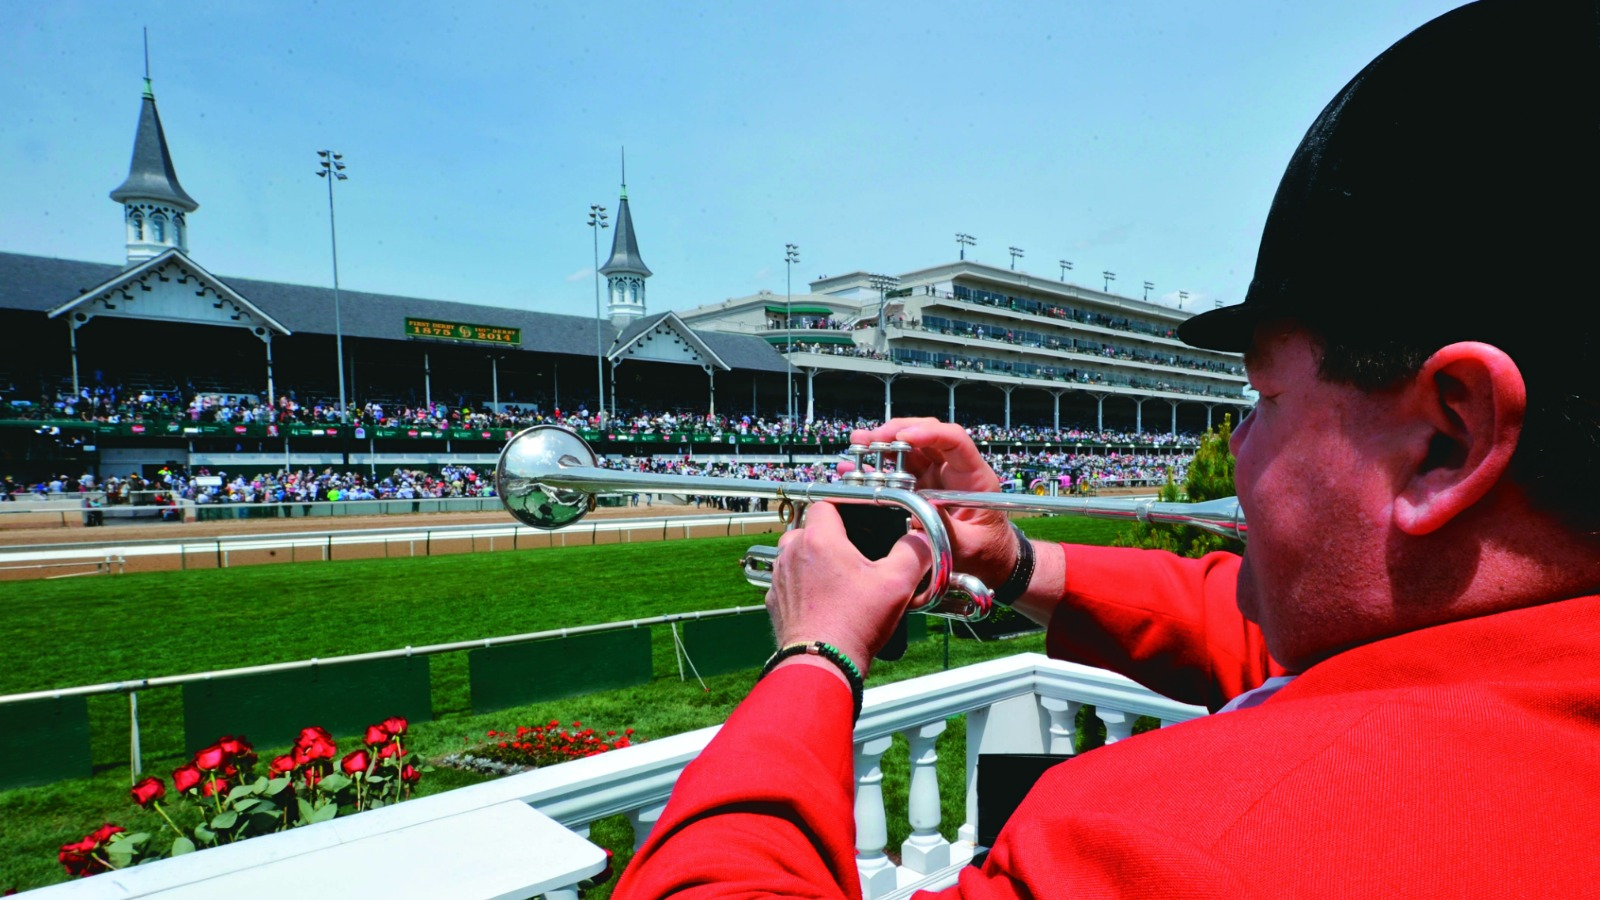 A bugler in a red jacket sounds the call at Churchill Downs on Derby Day